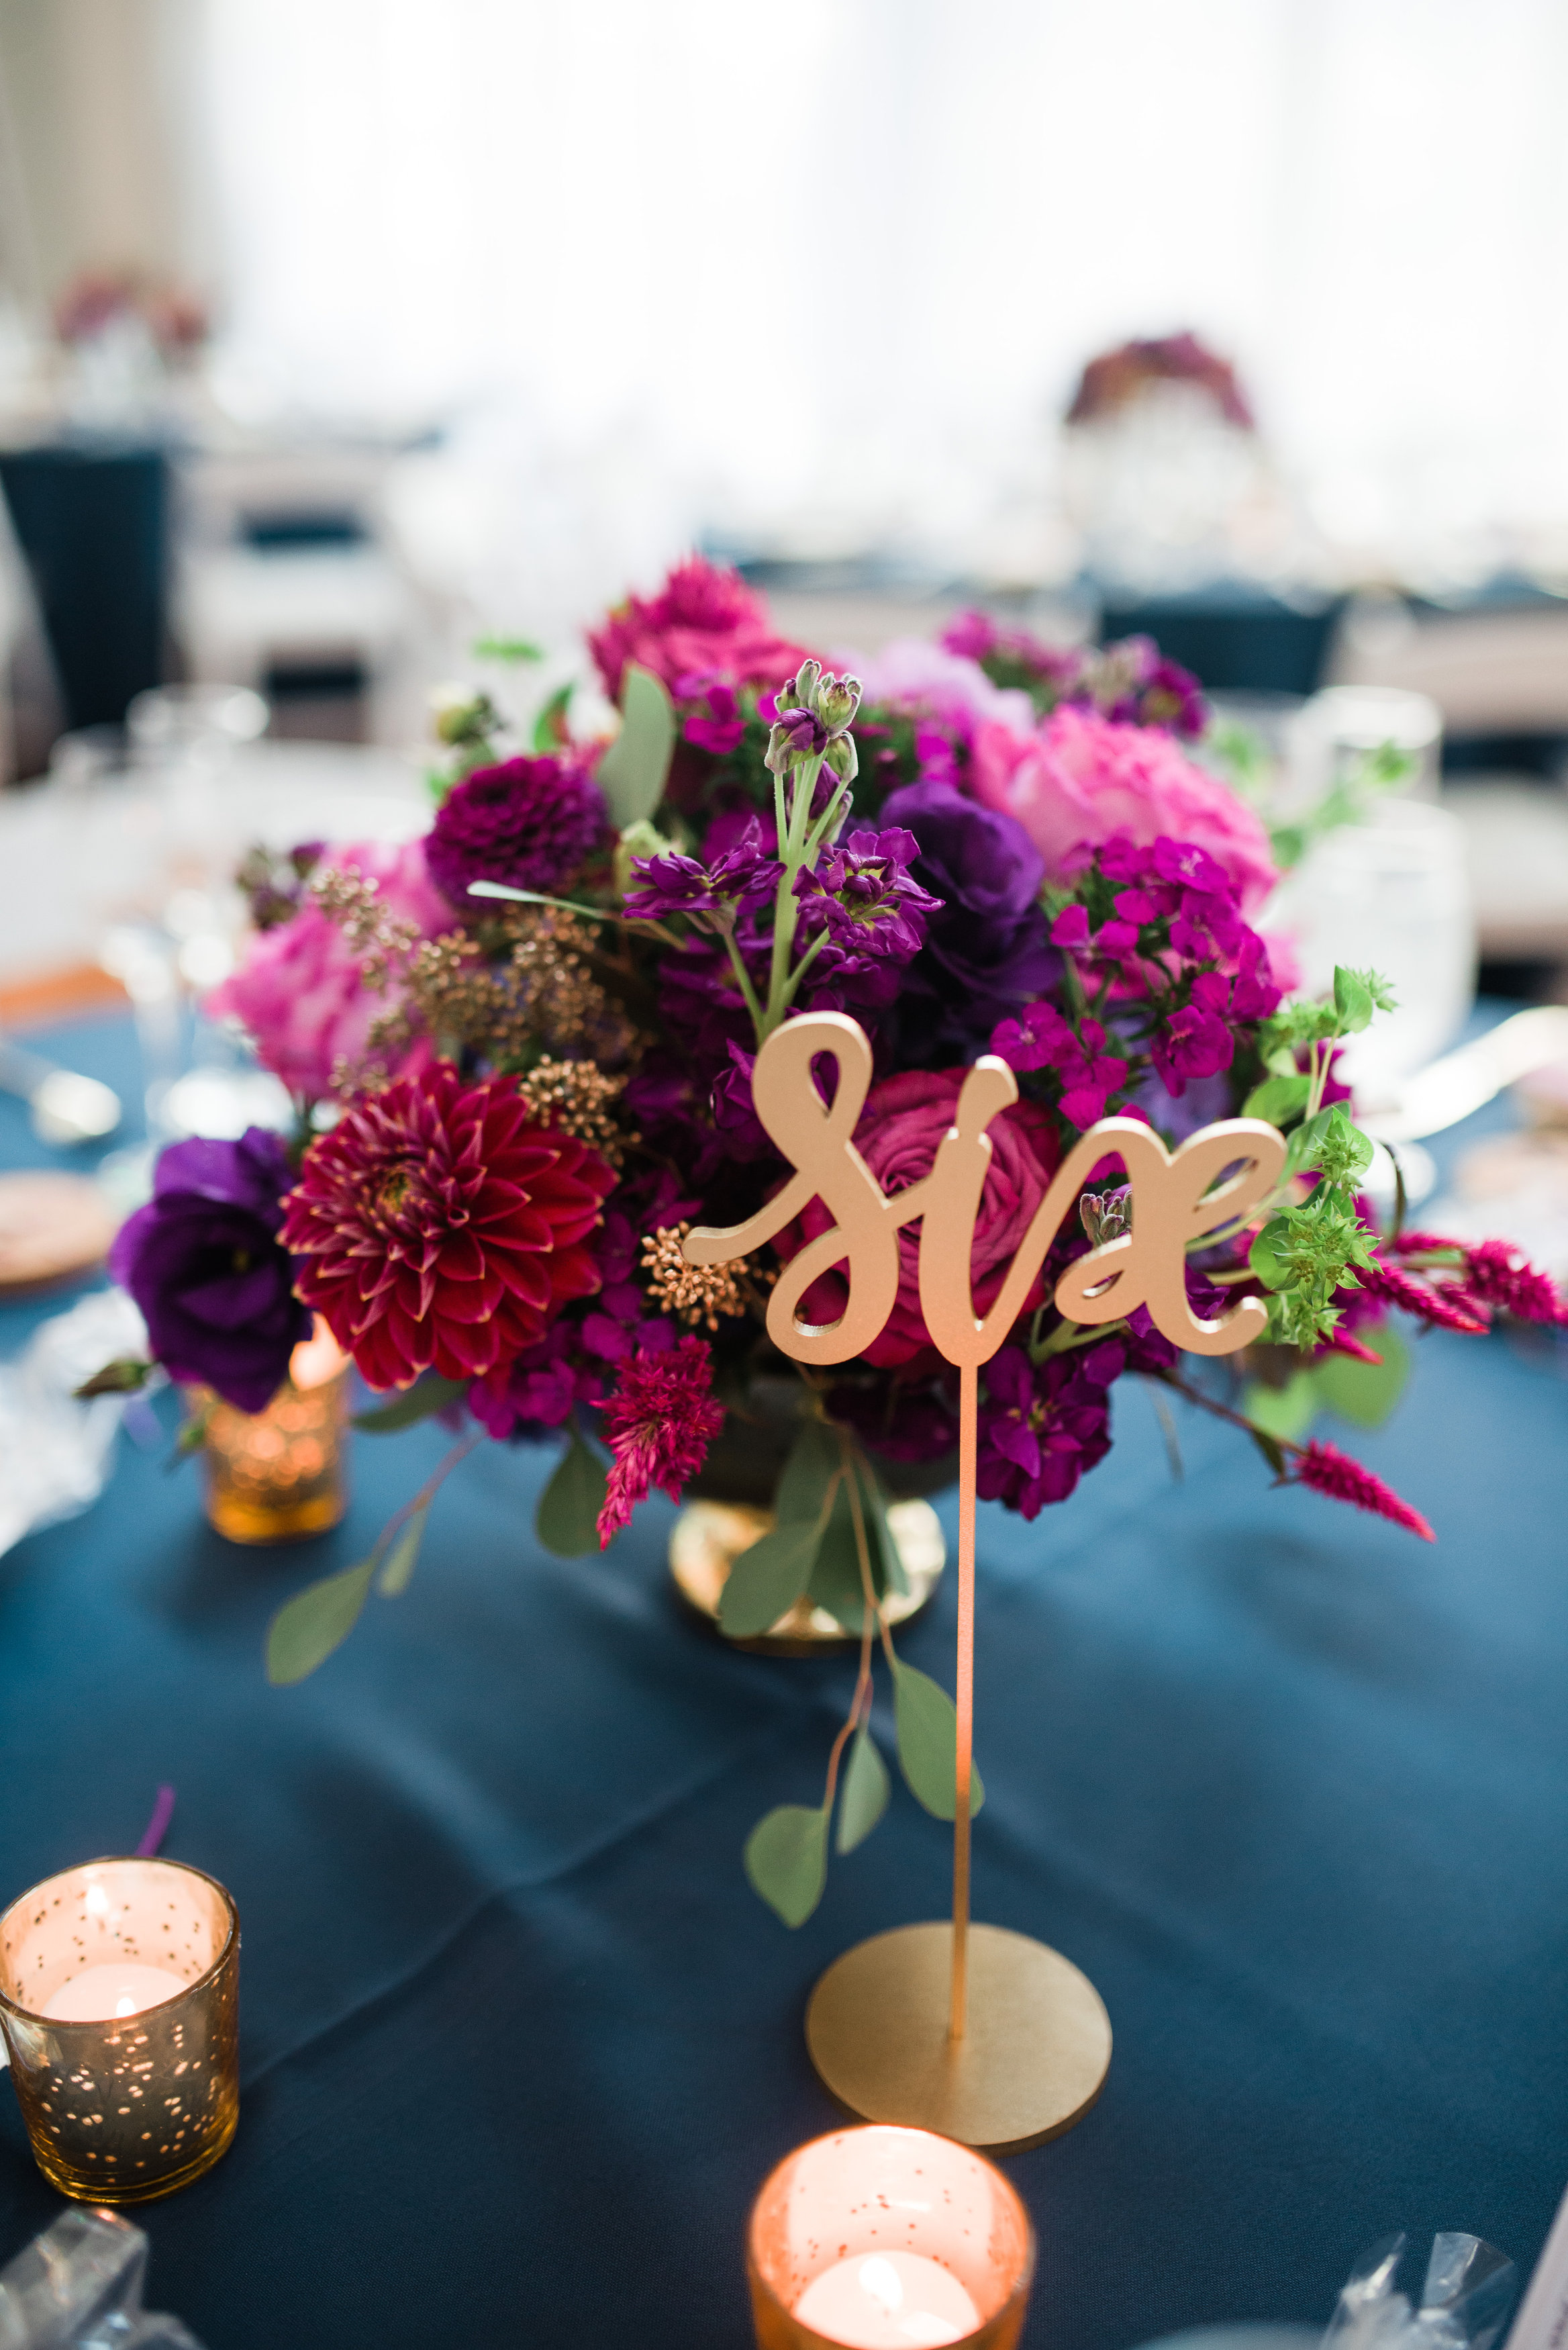 Philly Wedding, Philly Bride, Centerpiece, Rectangle Table, Head Table, Garland, Lavender Flowers, A Garden Party, Allison Dunn Photography